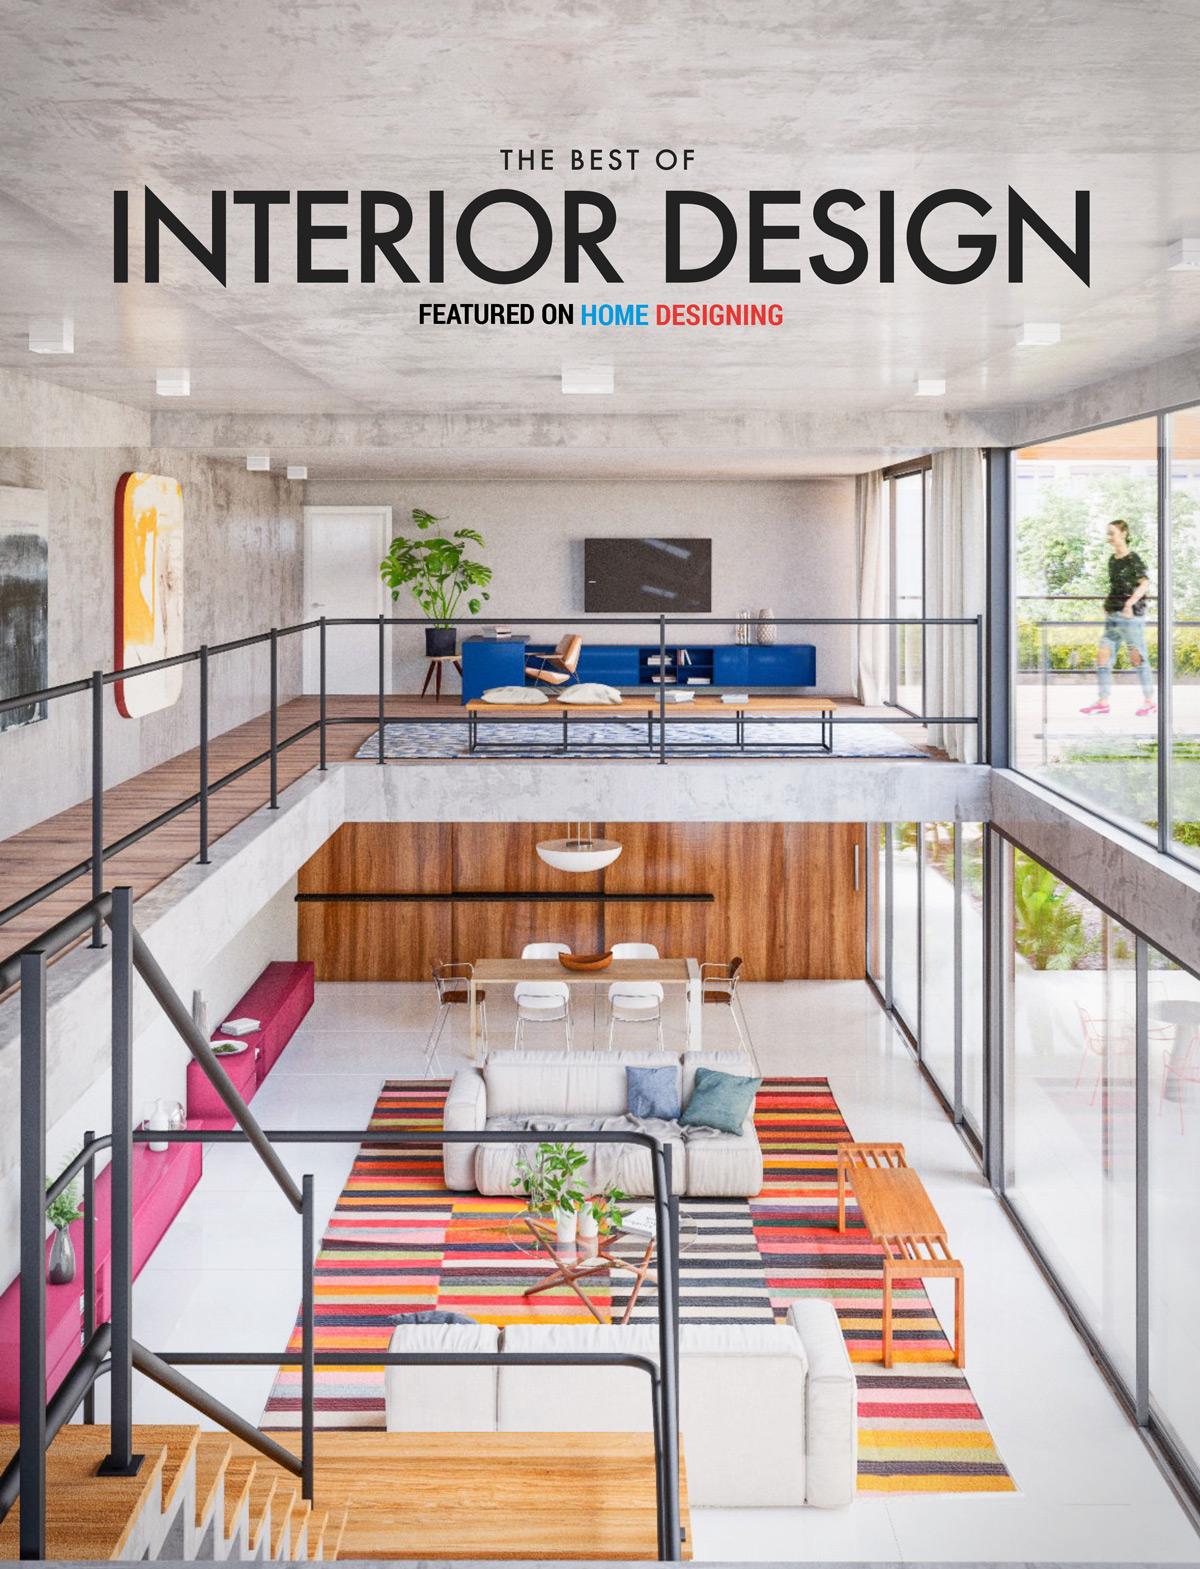 Free Interior Design eBook: The Best Of Interior Design | Interior ...